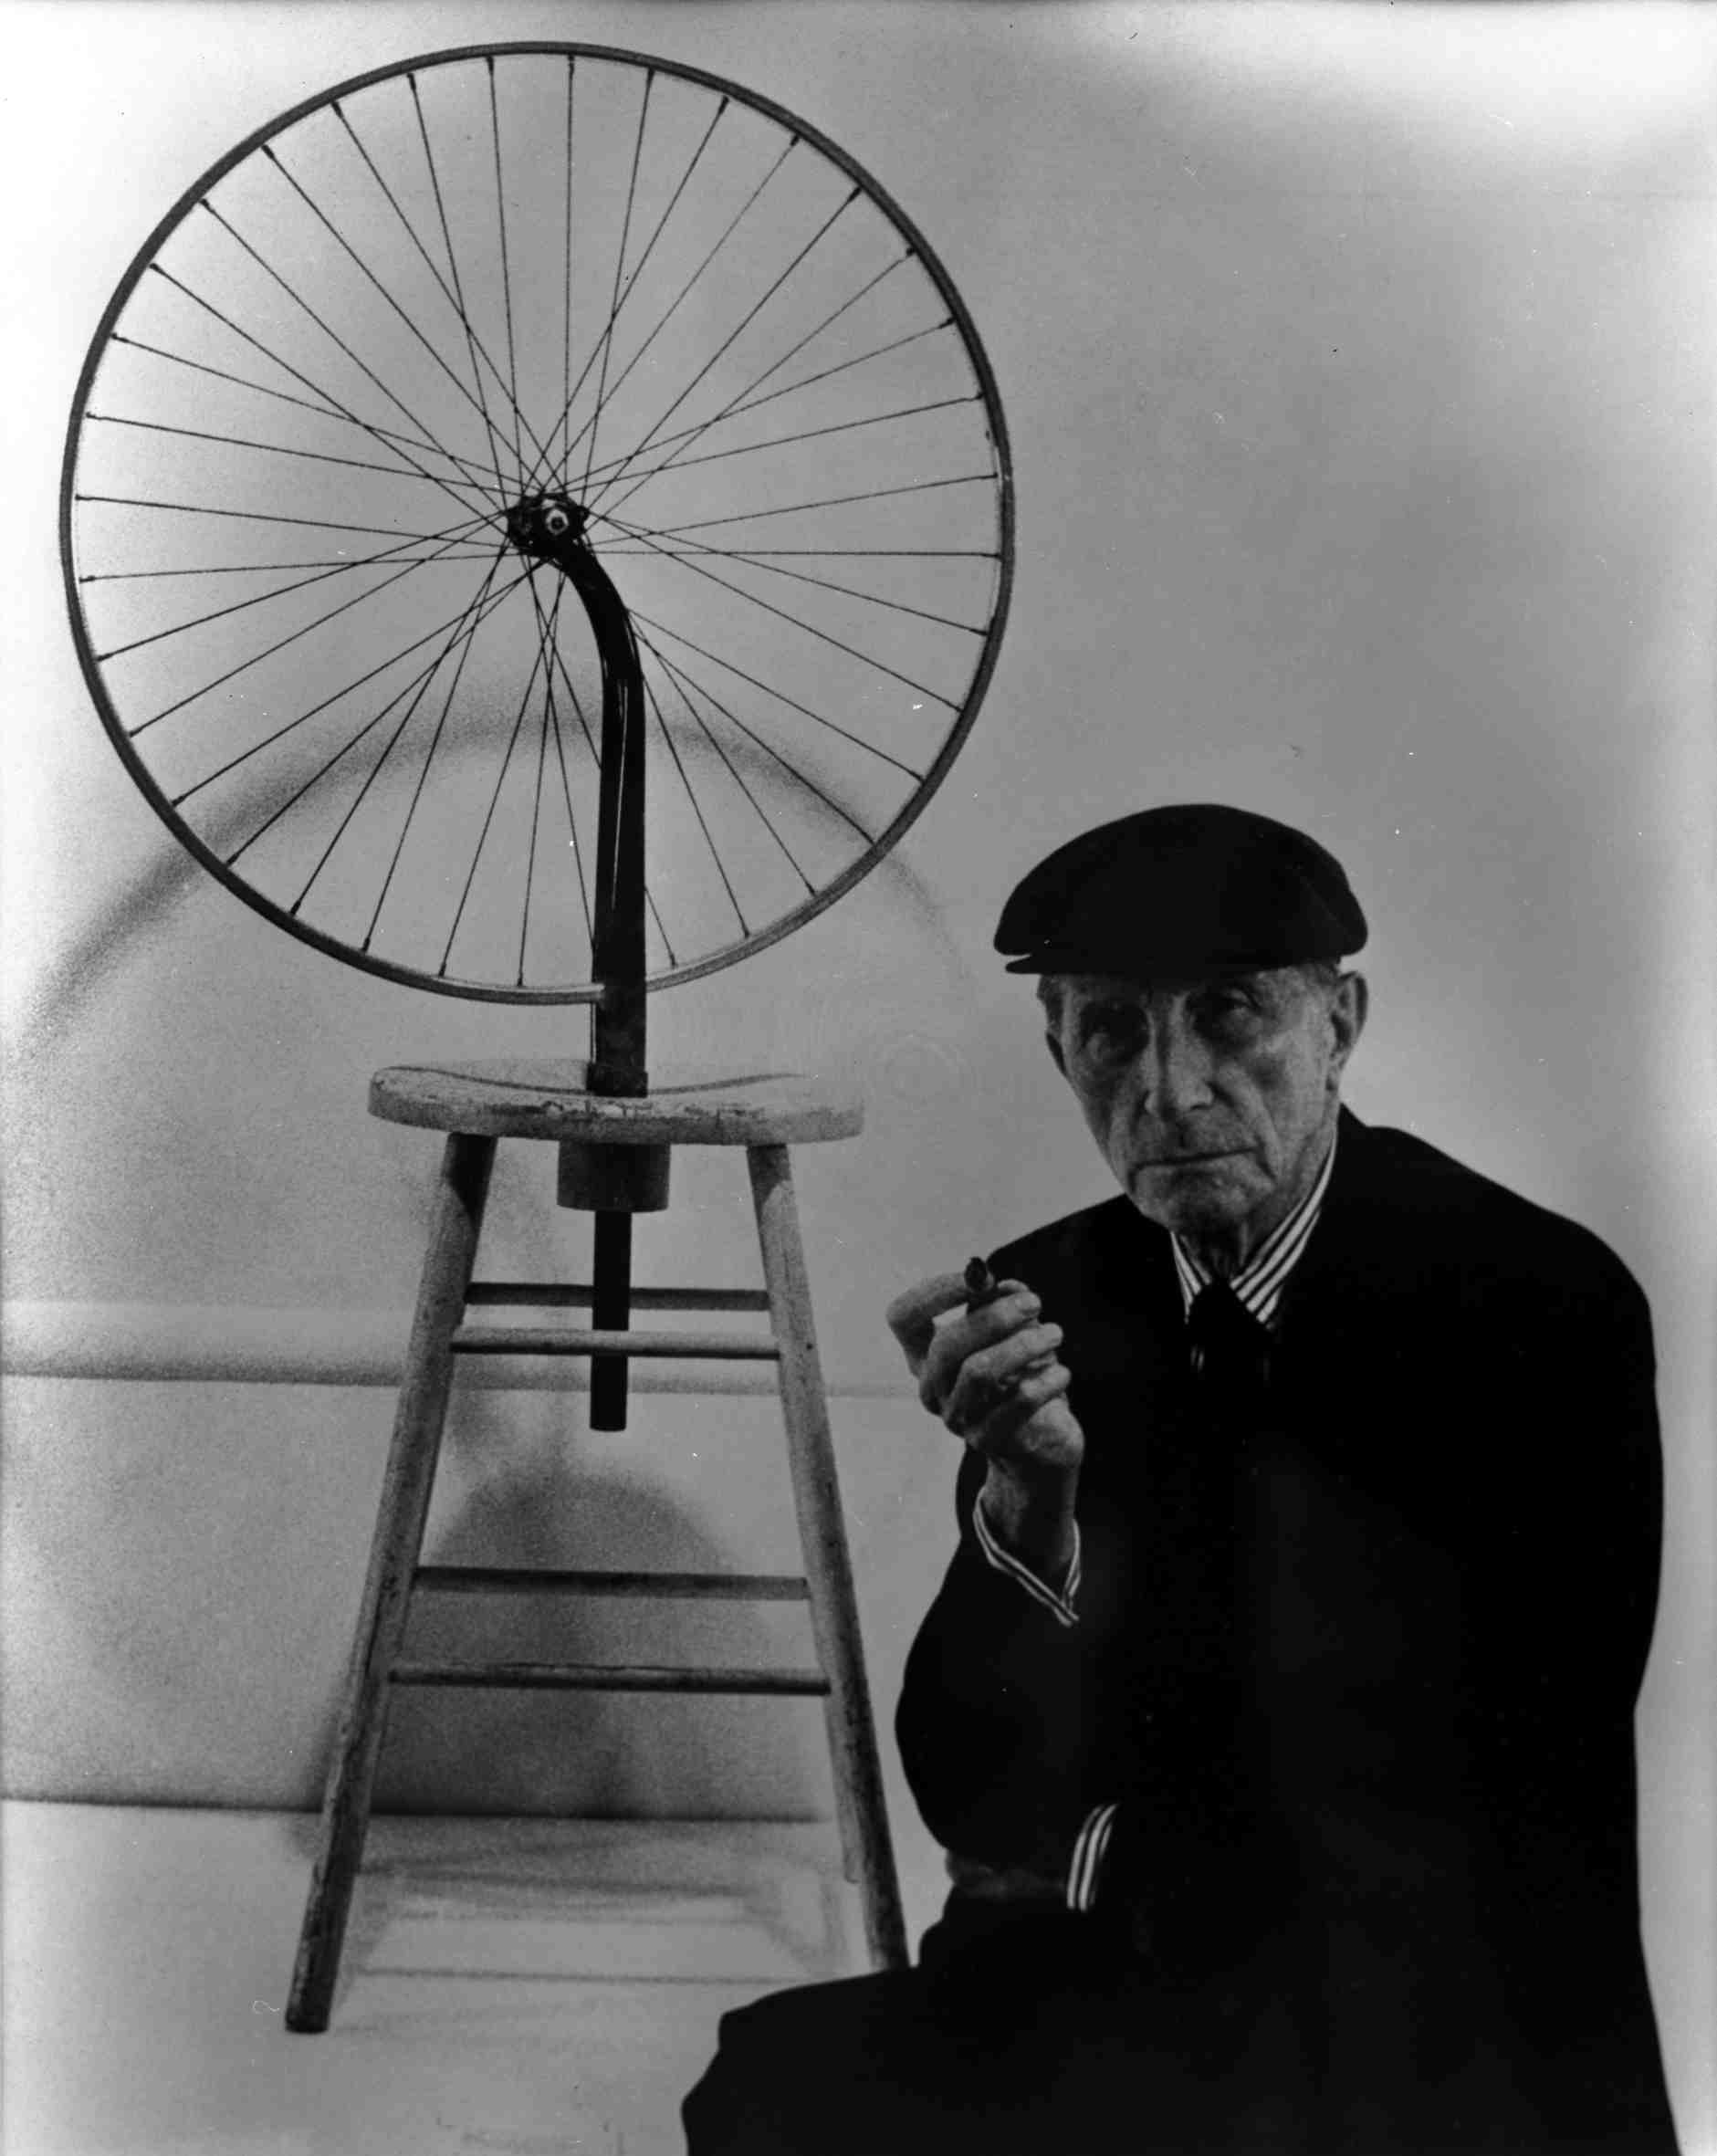 http://lounge.obviousmag.org/pauta_para_o_cha_das_4h/duchamp-with-bicycle-wheel-1913.jpg